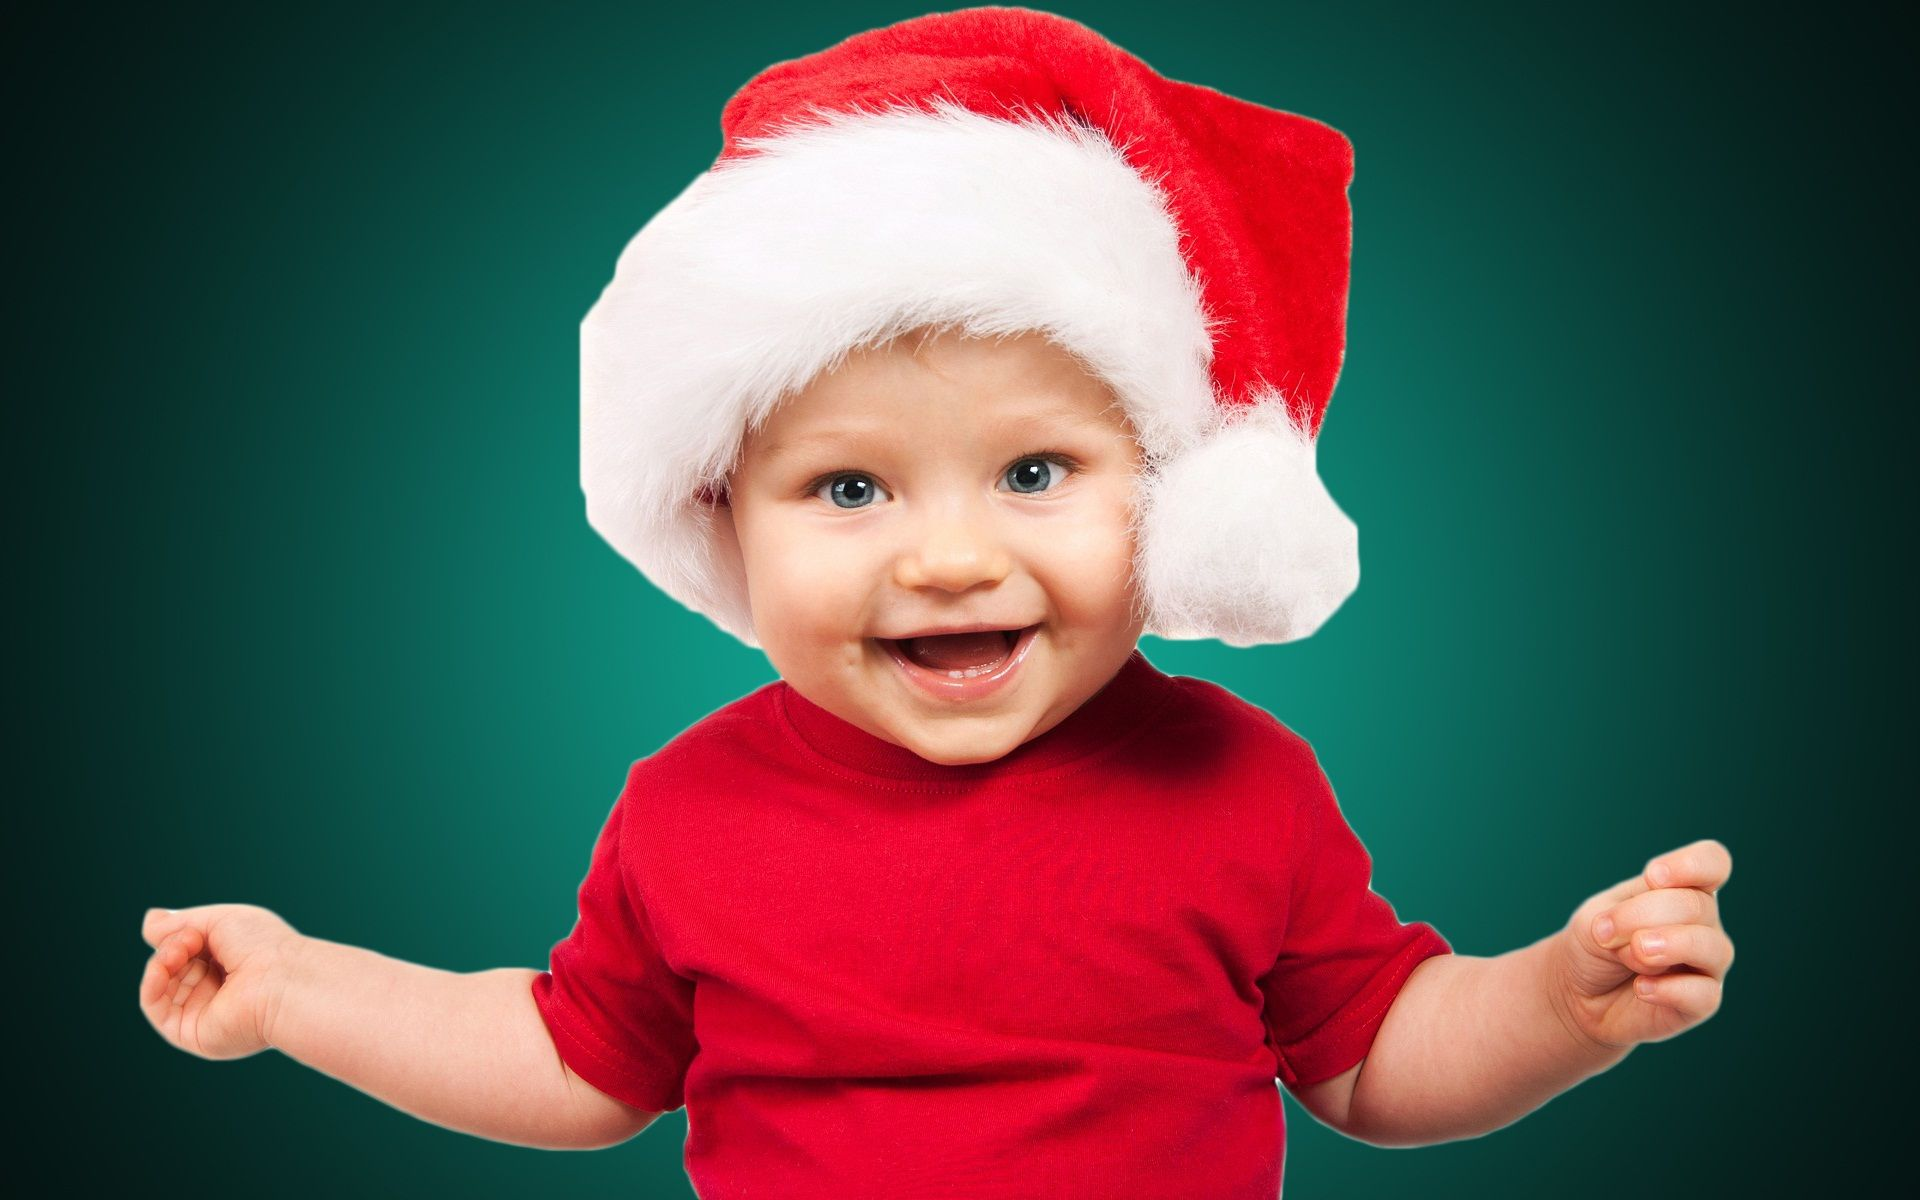 38fd91a7a99 Christmas cap wear cute baby wallpaper